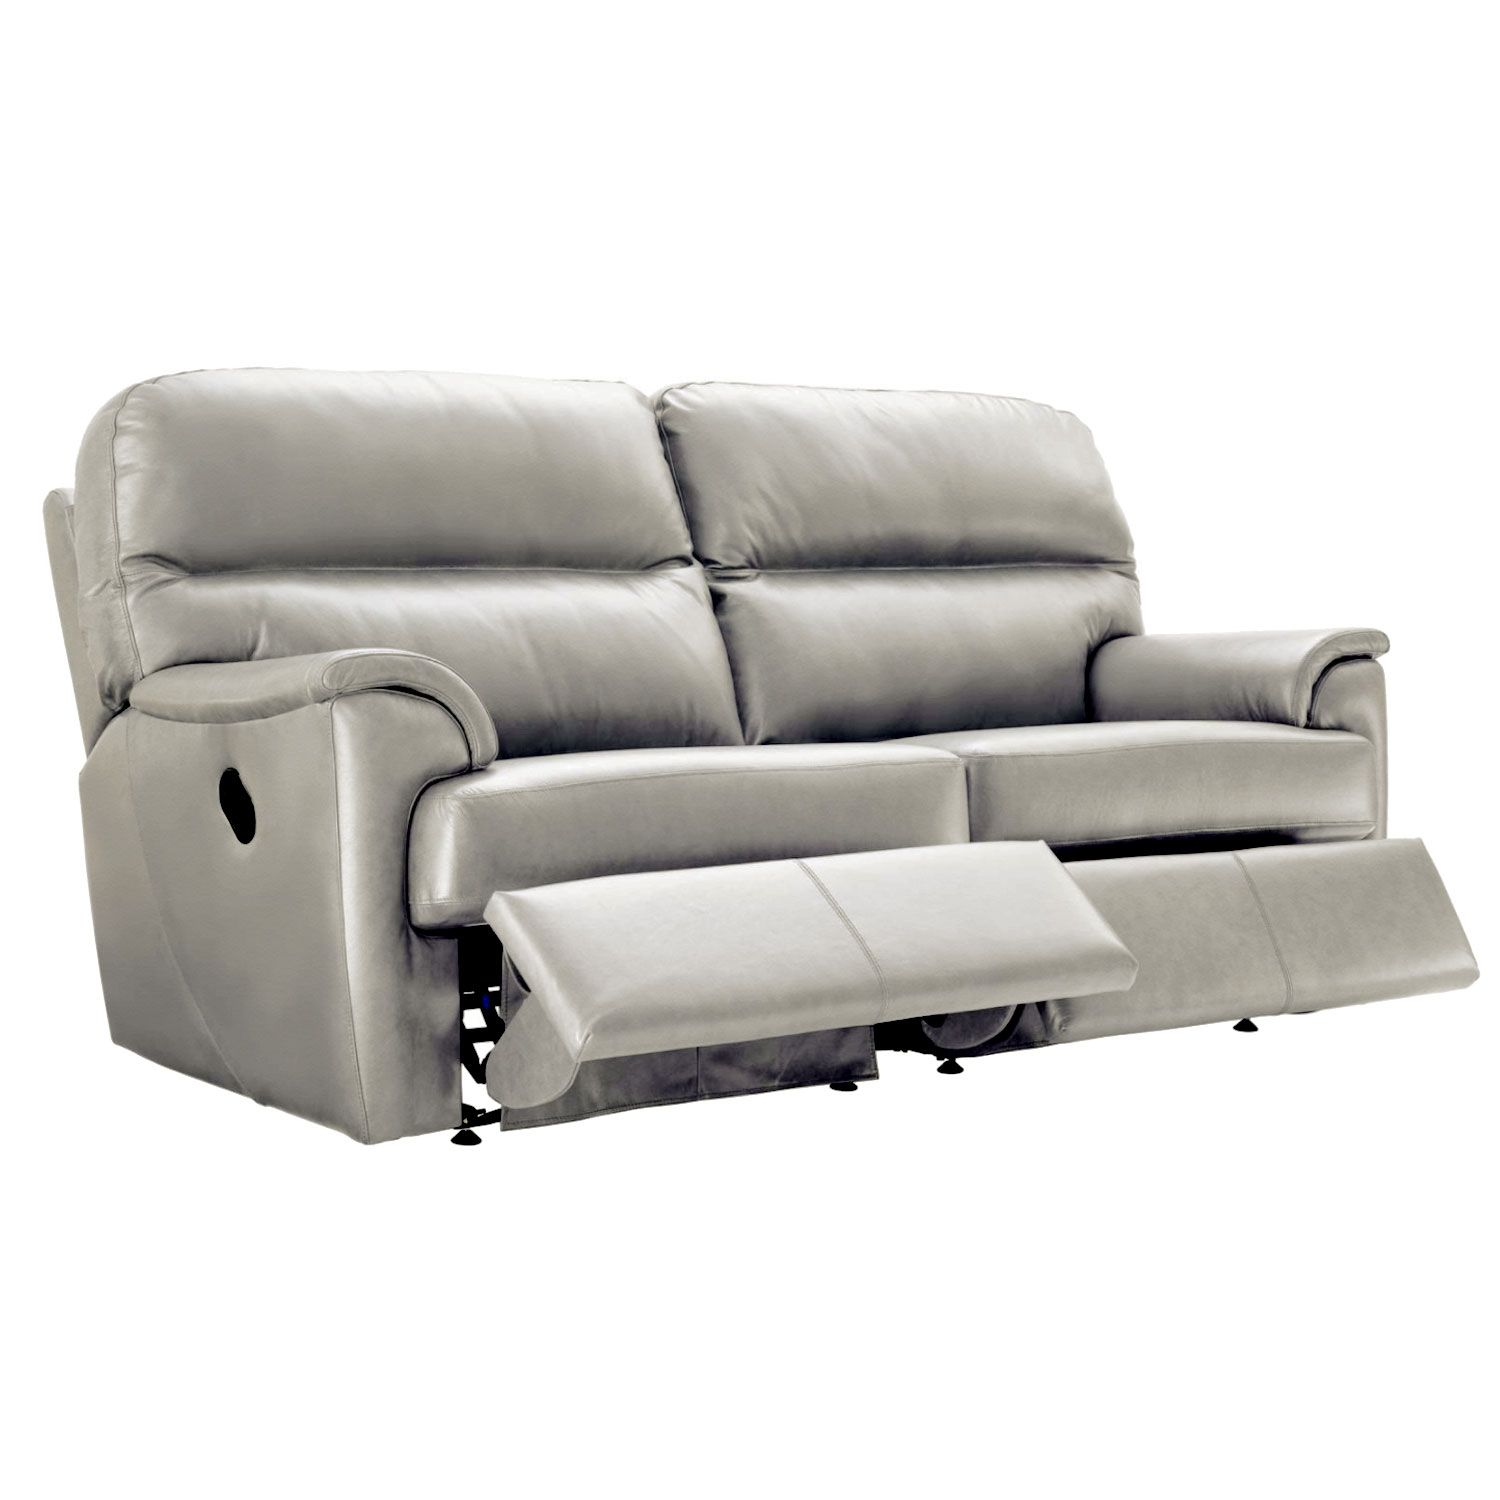 Image of G Plan Watson 3 Seater Double Power Recliner Leather Sofa